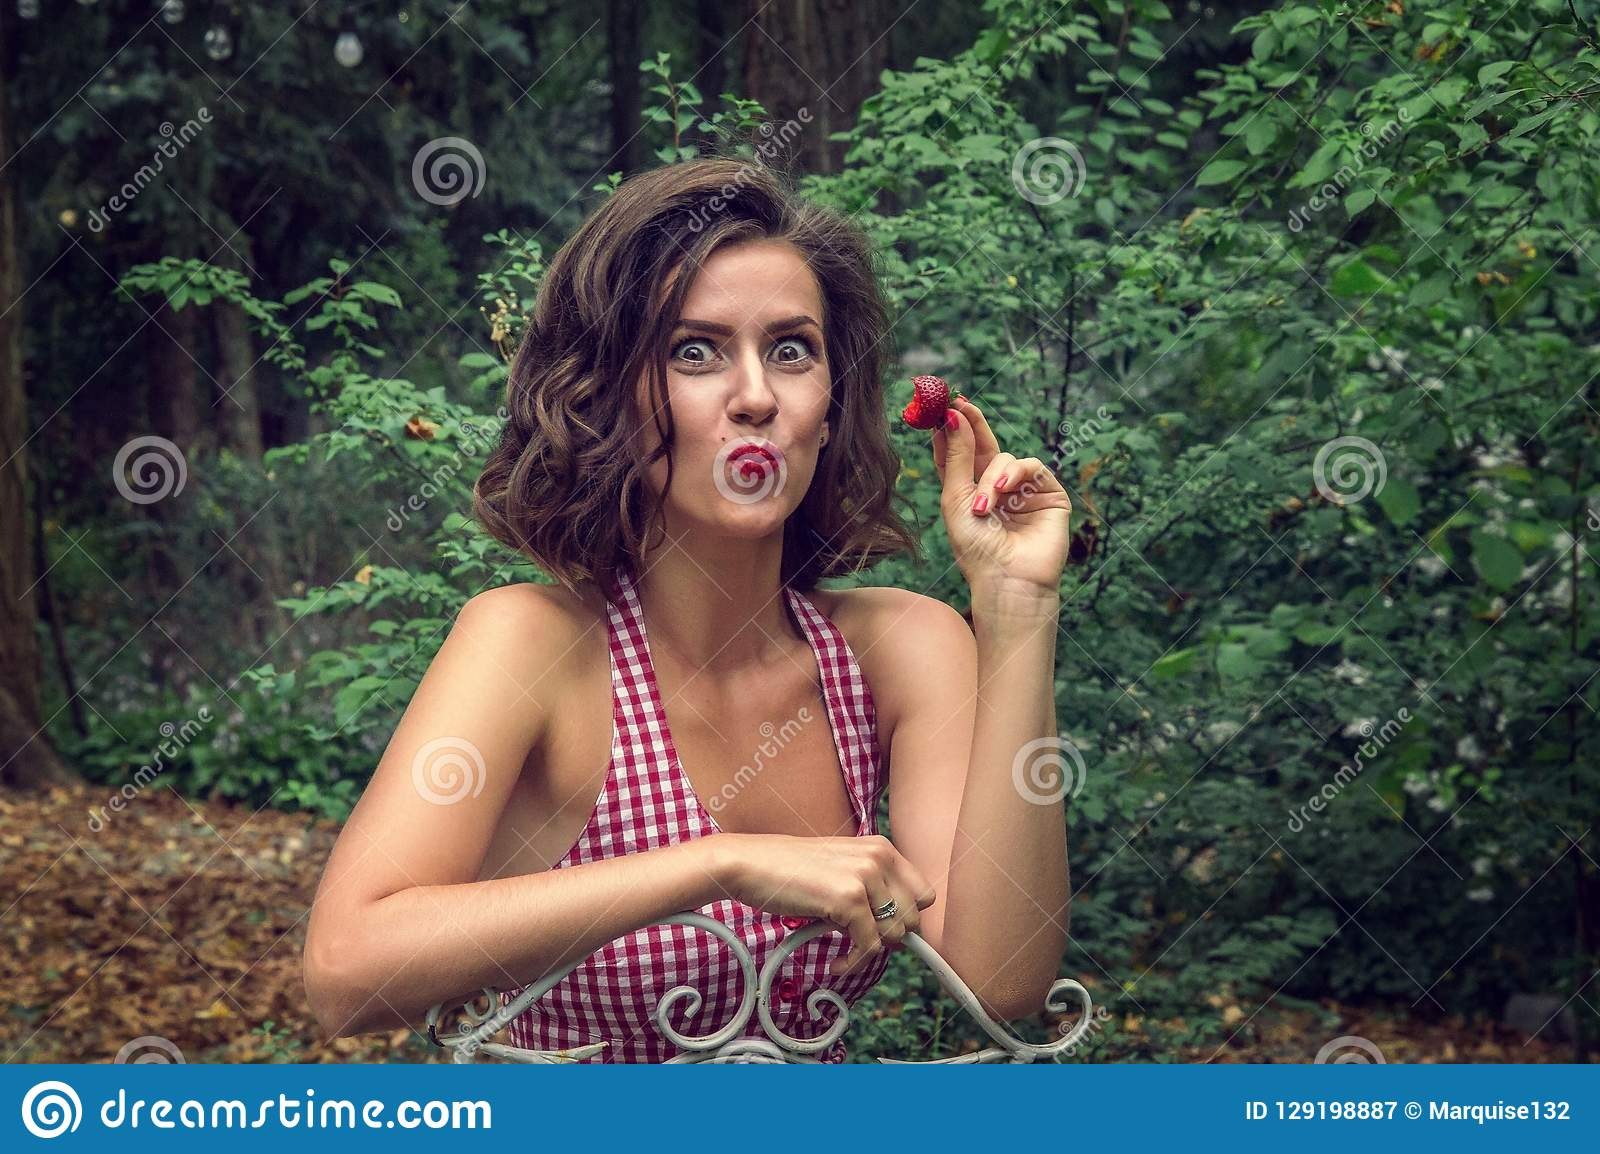 Pin-up girl eats red strawberry. On the face there is an emotionally displayed delight and pleasure